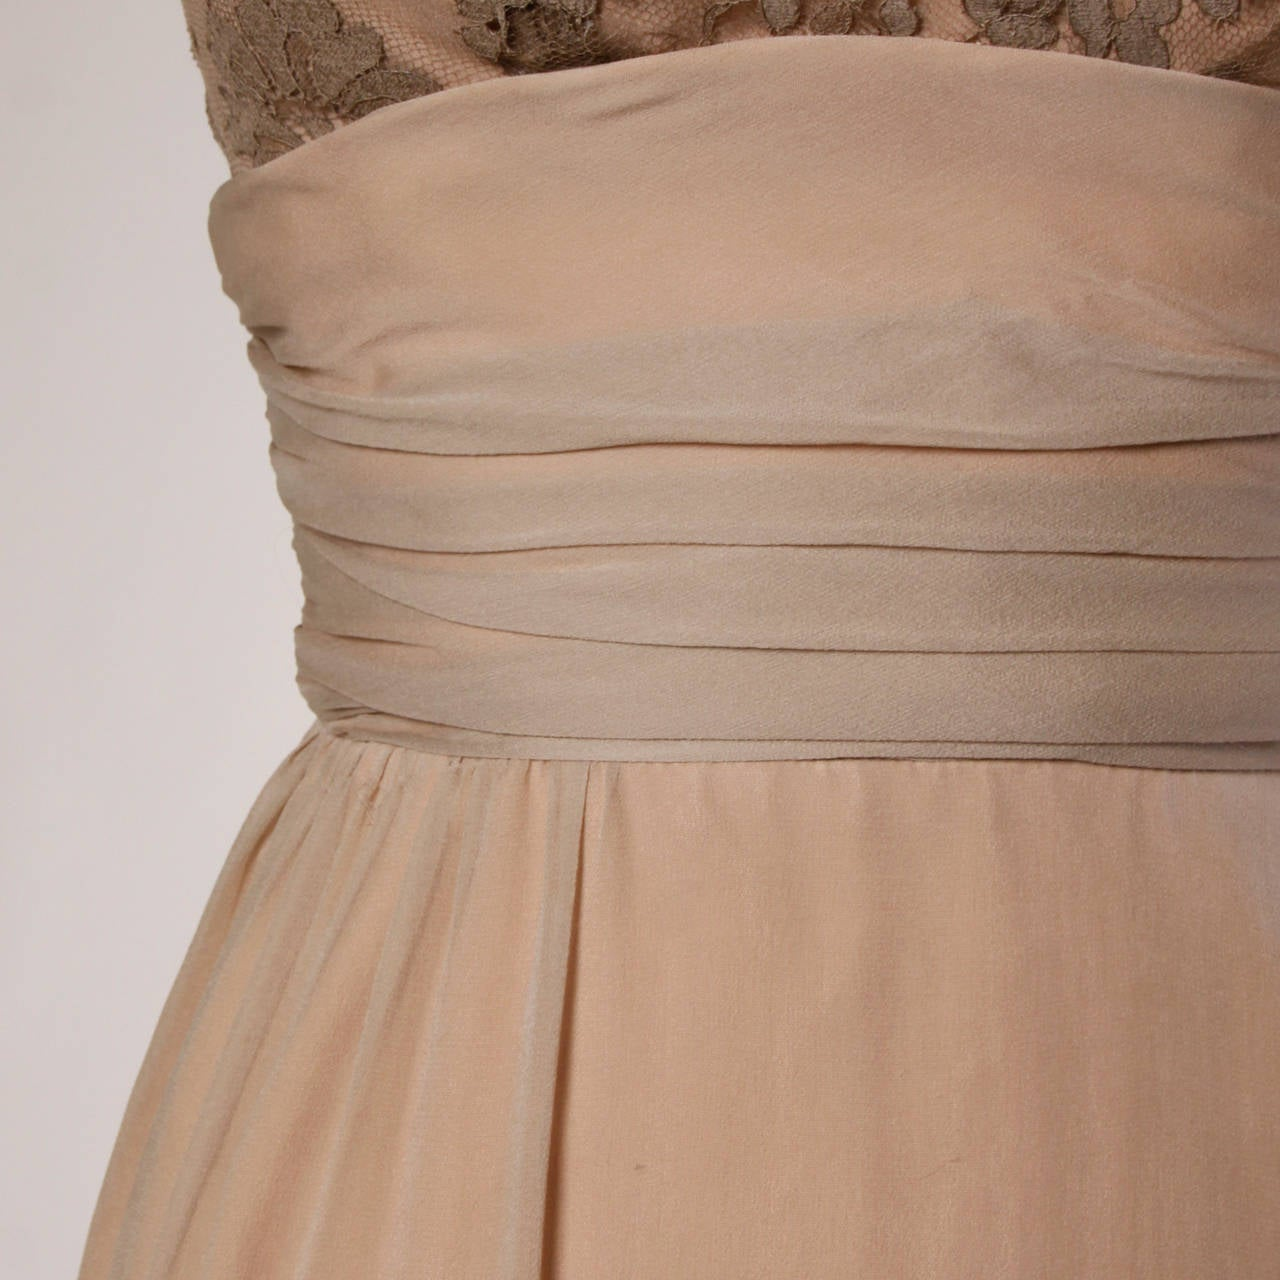 Edith Flagg Vintage 1960s Nude Illusion Silk + Lace Cocktail Dress 4